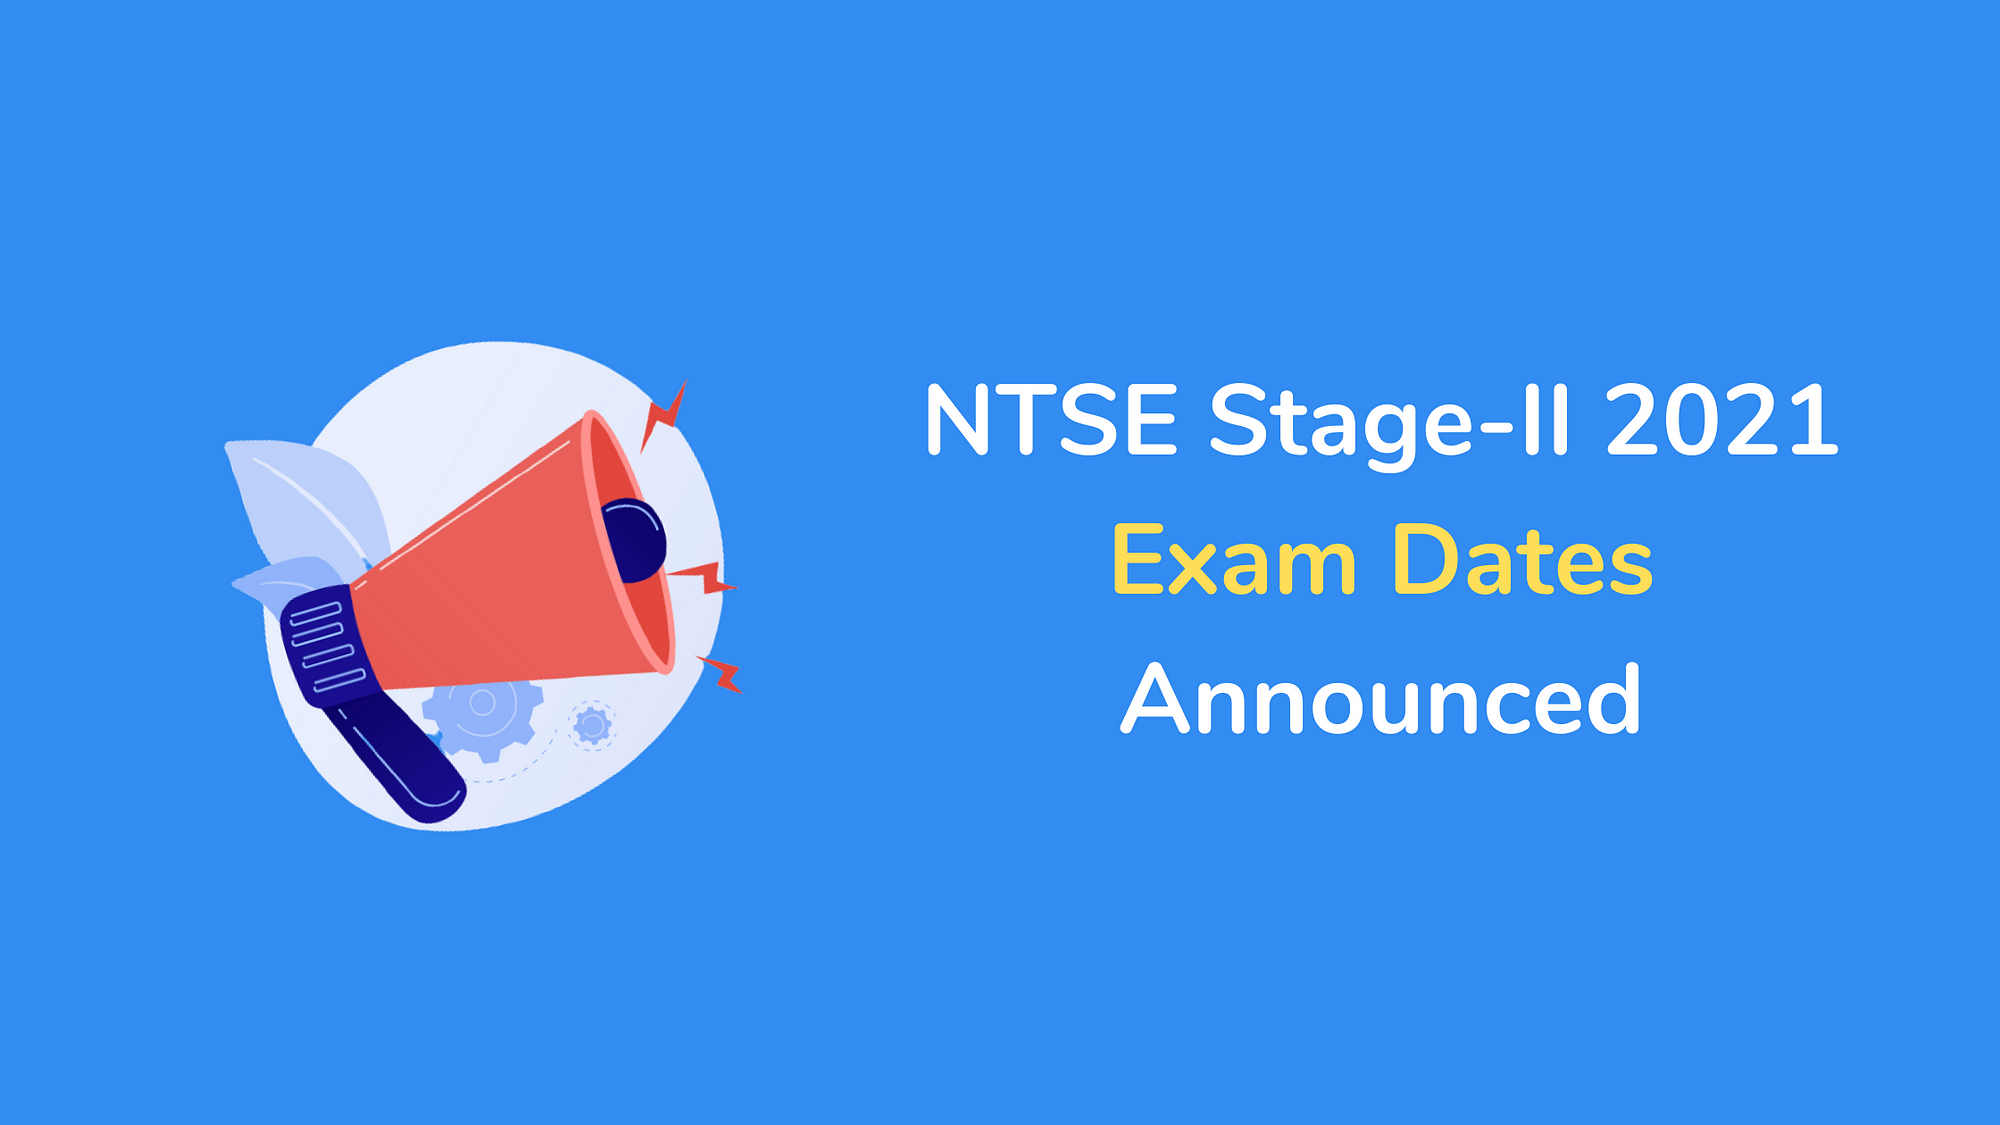 NCERT announces NTSE 2021 Stage 2 Exam Date,